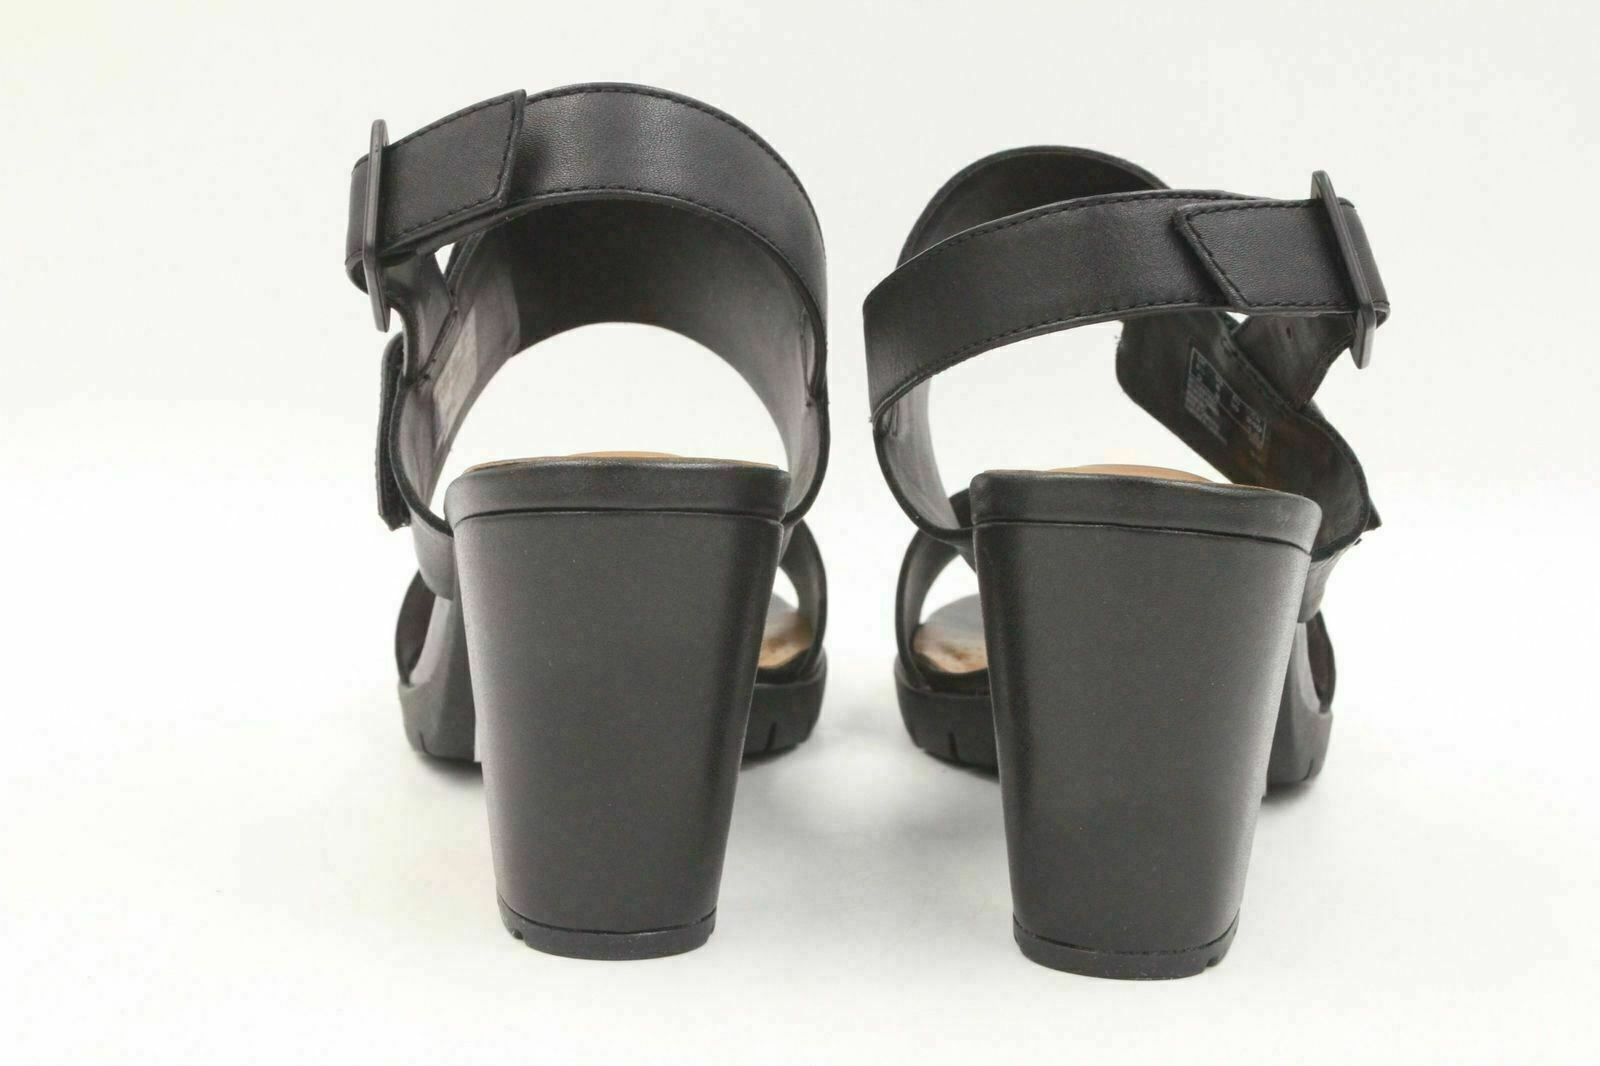 739b295d776 New With Box. CLARKS Kurtley Shine Women Block Heel Adjustable Sandals Size  8M Black Leather. Brand  CLARKS